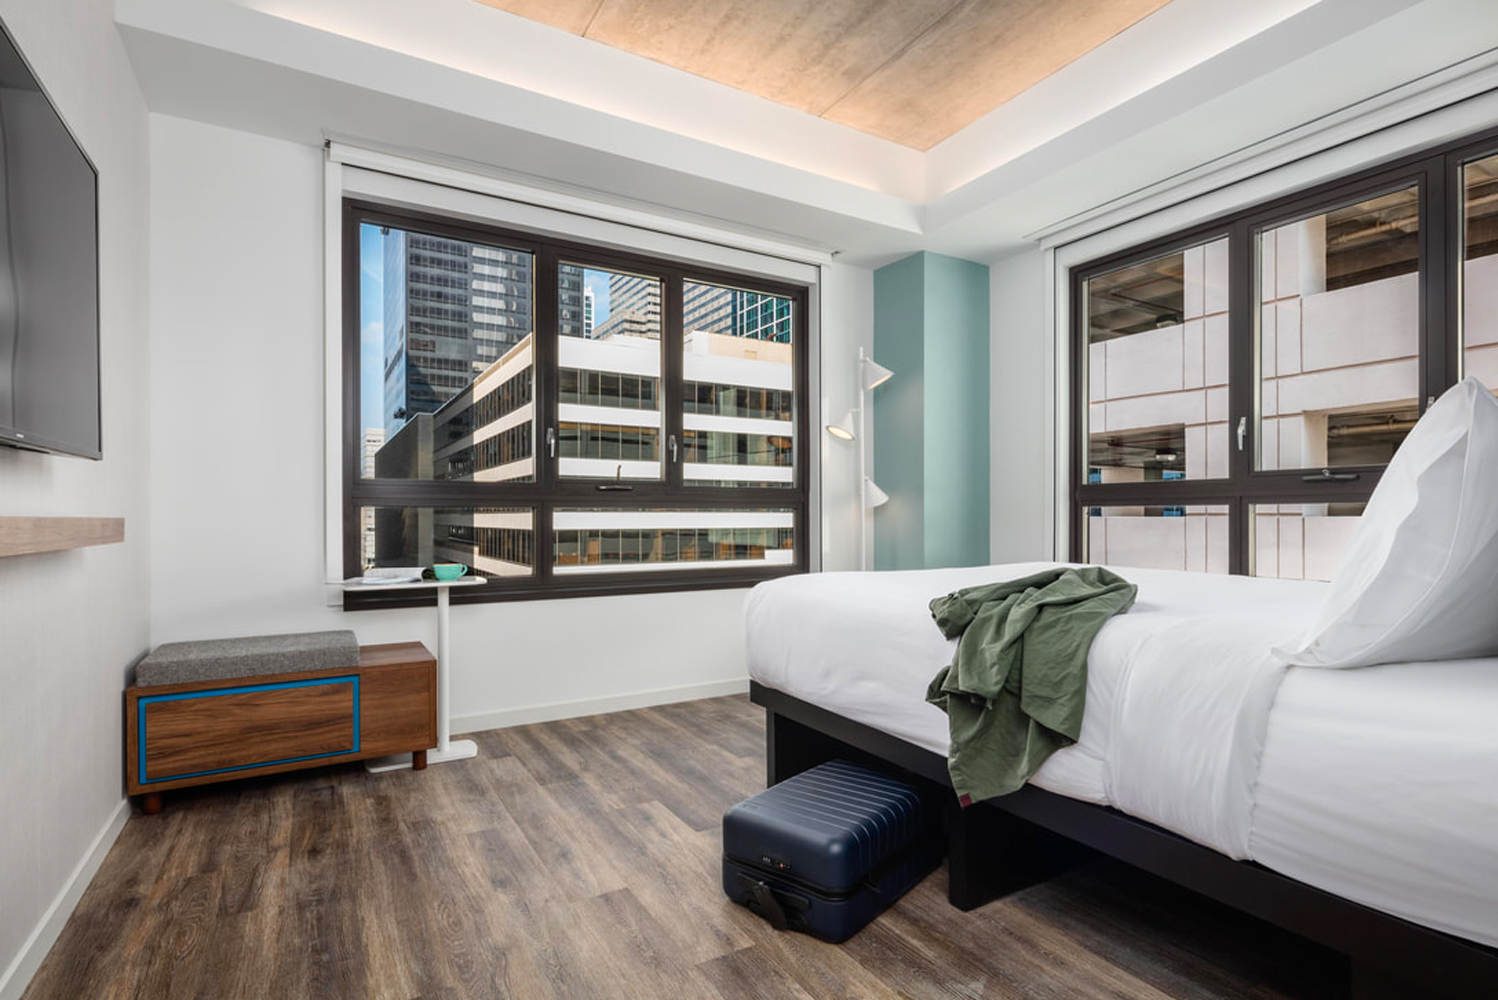 Pod Hotels continues its expansion, adding Pod Philly to its portfolio as Philadelphia's first-micro hotel.